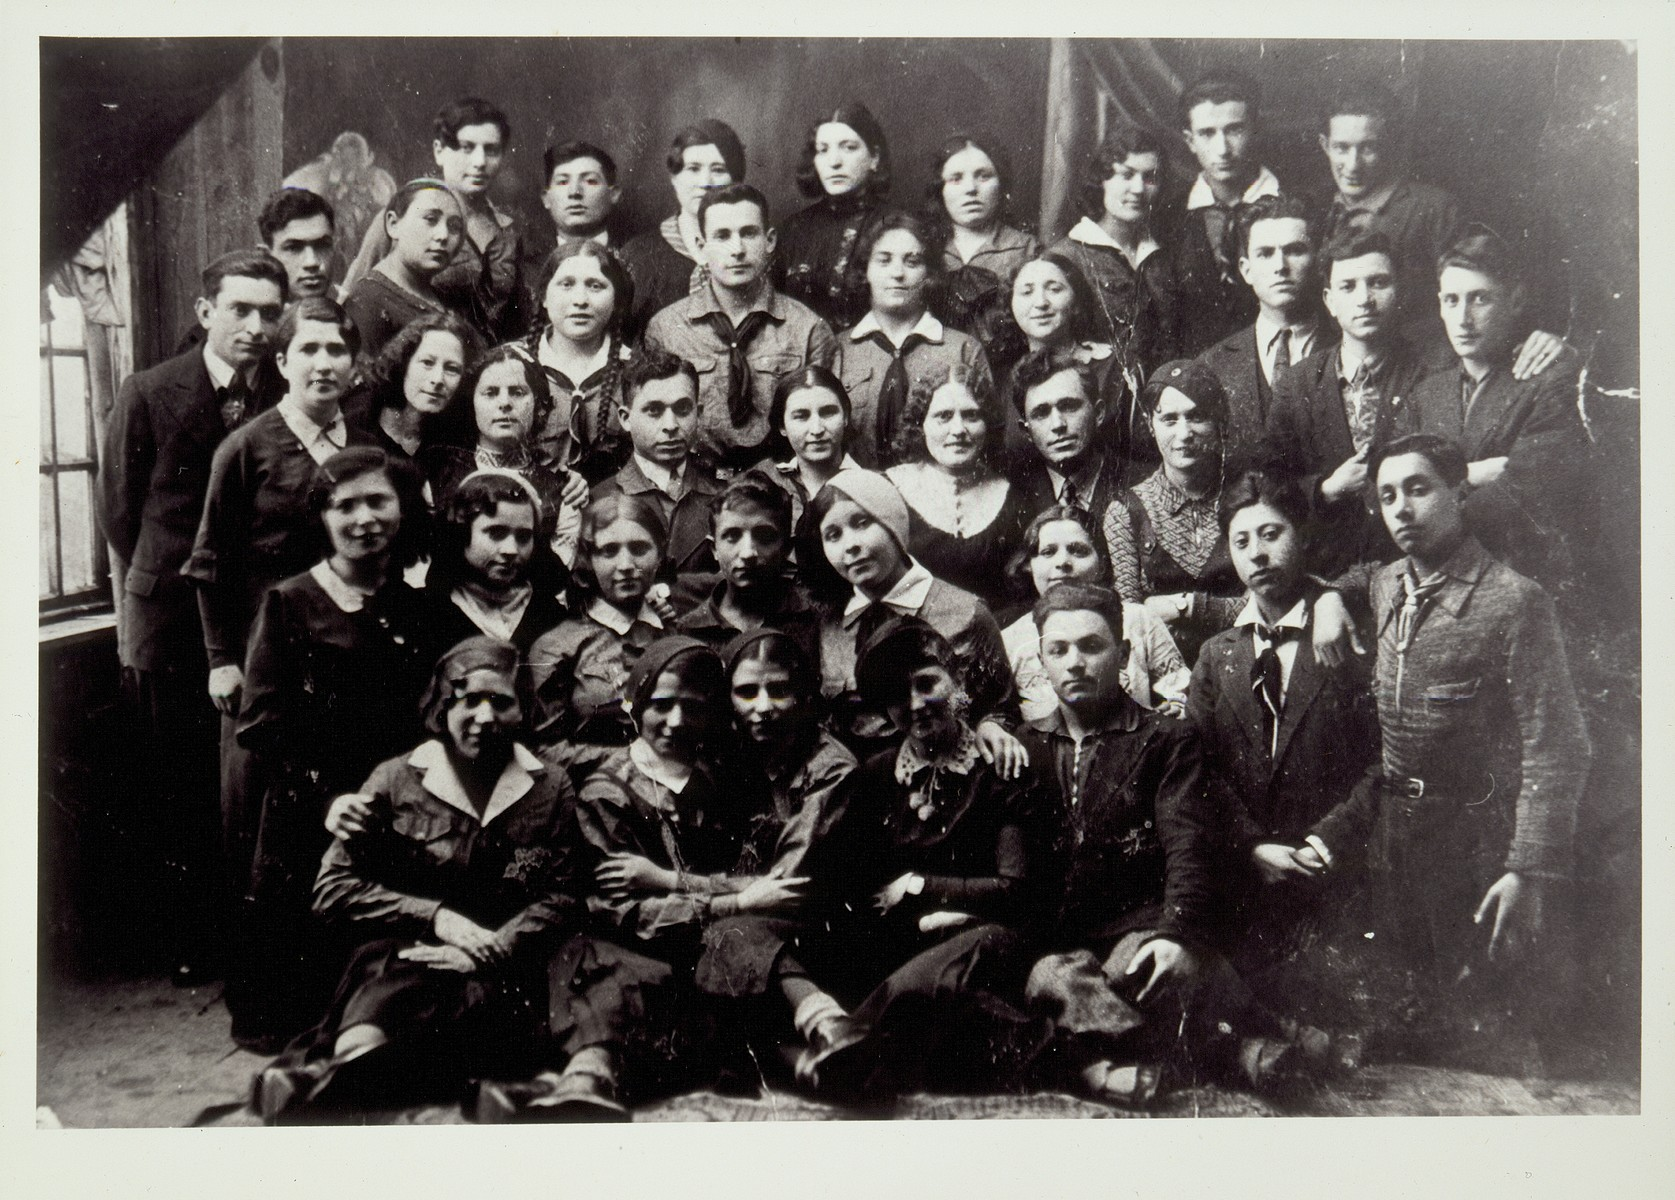 Members of a hachshara in Pinsk.   Gershon Rochowski is in the front row, second from the right. He immigrated to Palestine in May 1934. Flora Kagan is in the third row, third person from the right.